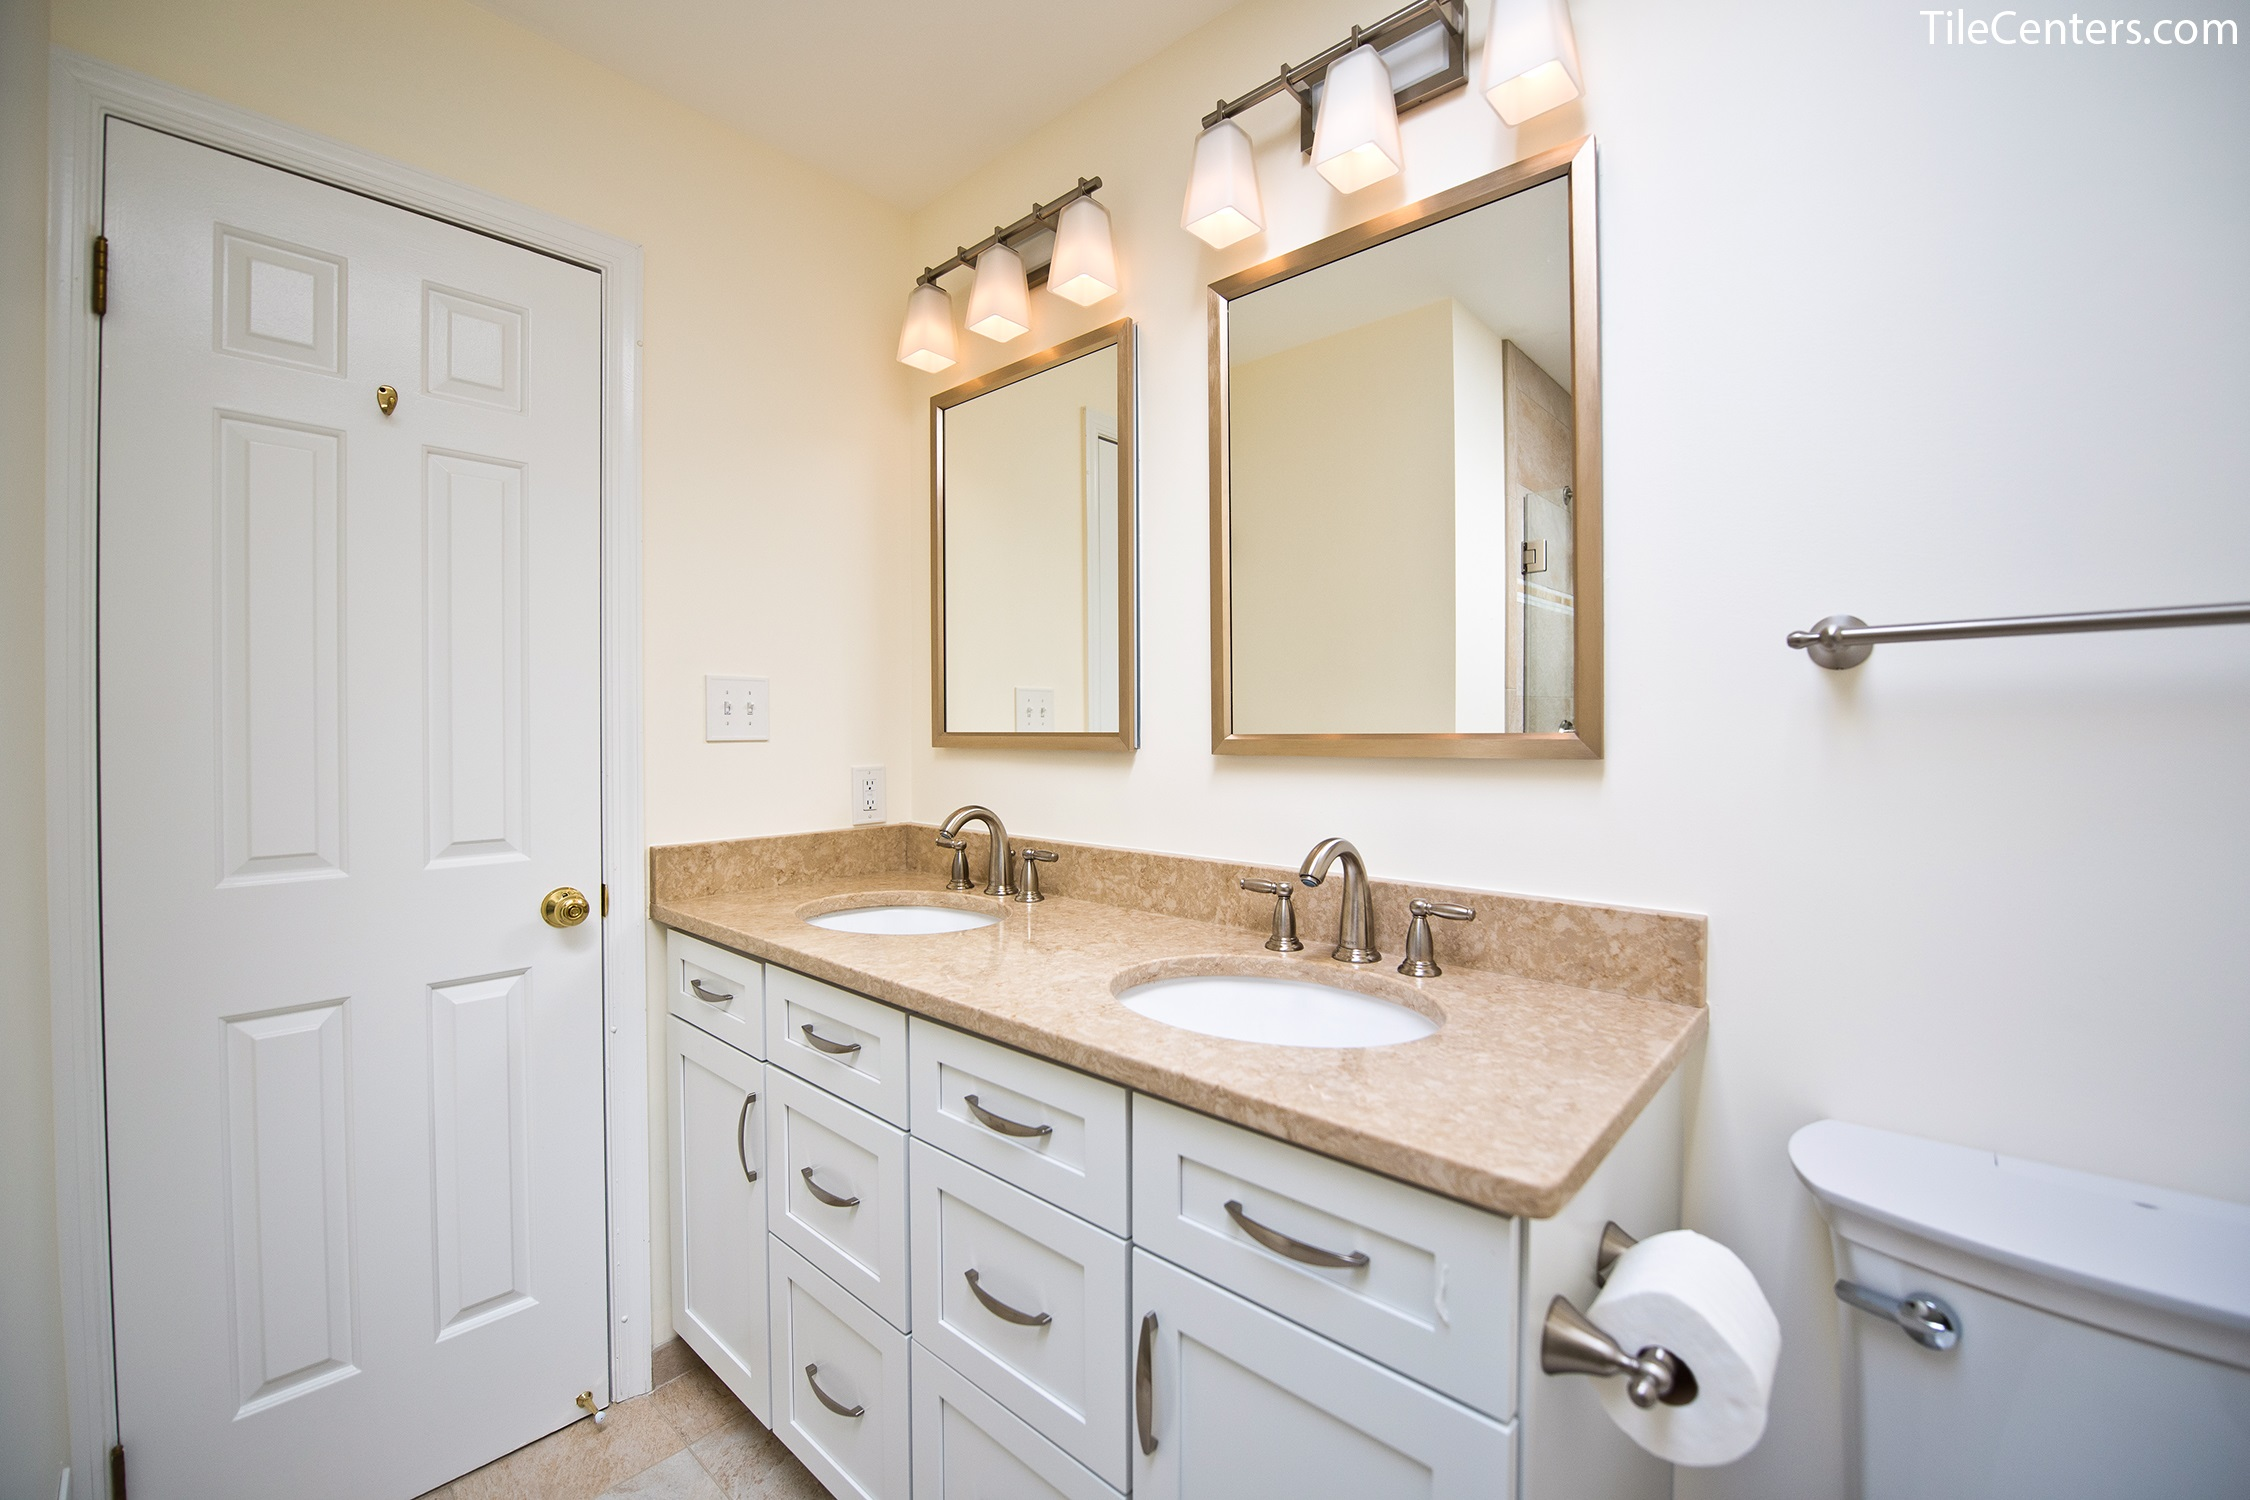 Gorgeous Kitchen Renovation In Potomac Maryland: Aqueduct Rd, Potomac, MD 20854: Tile Center